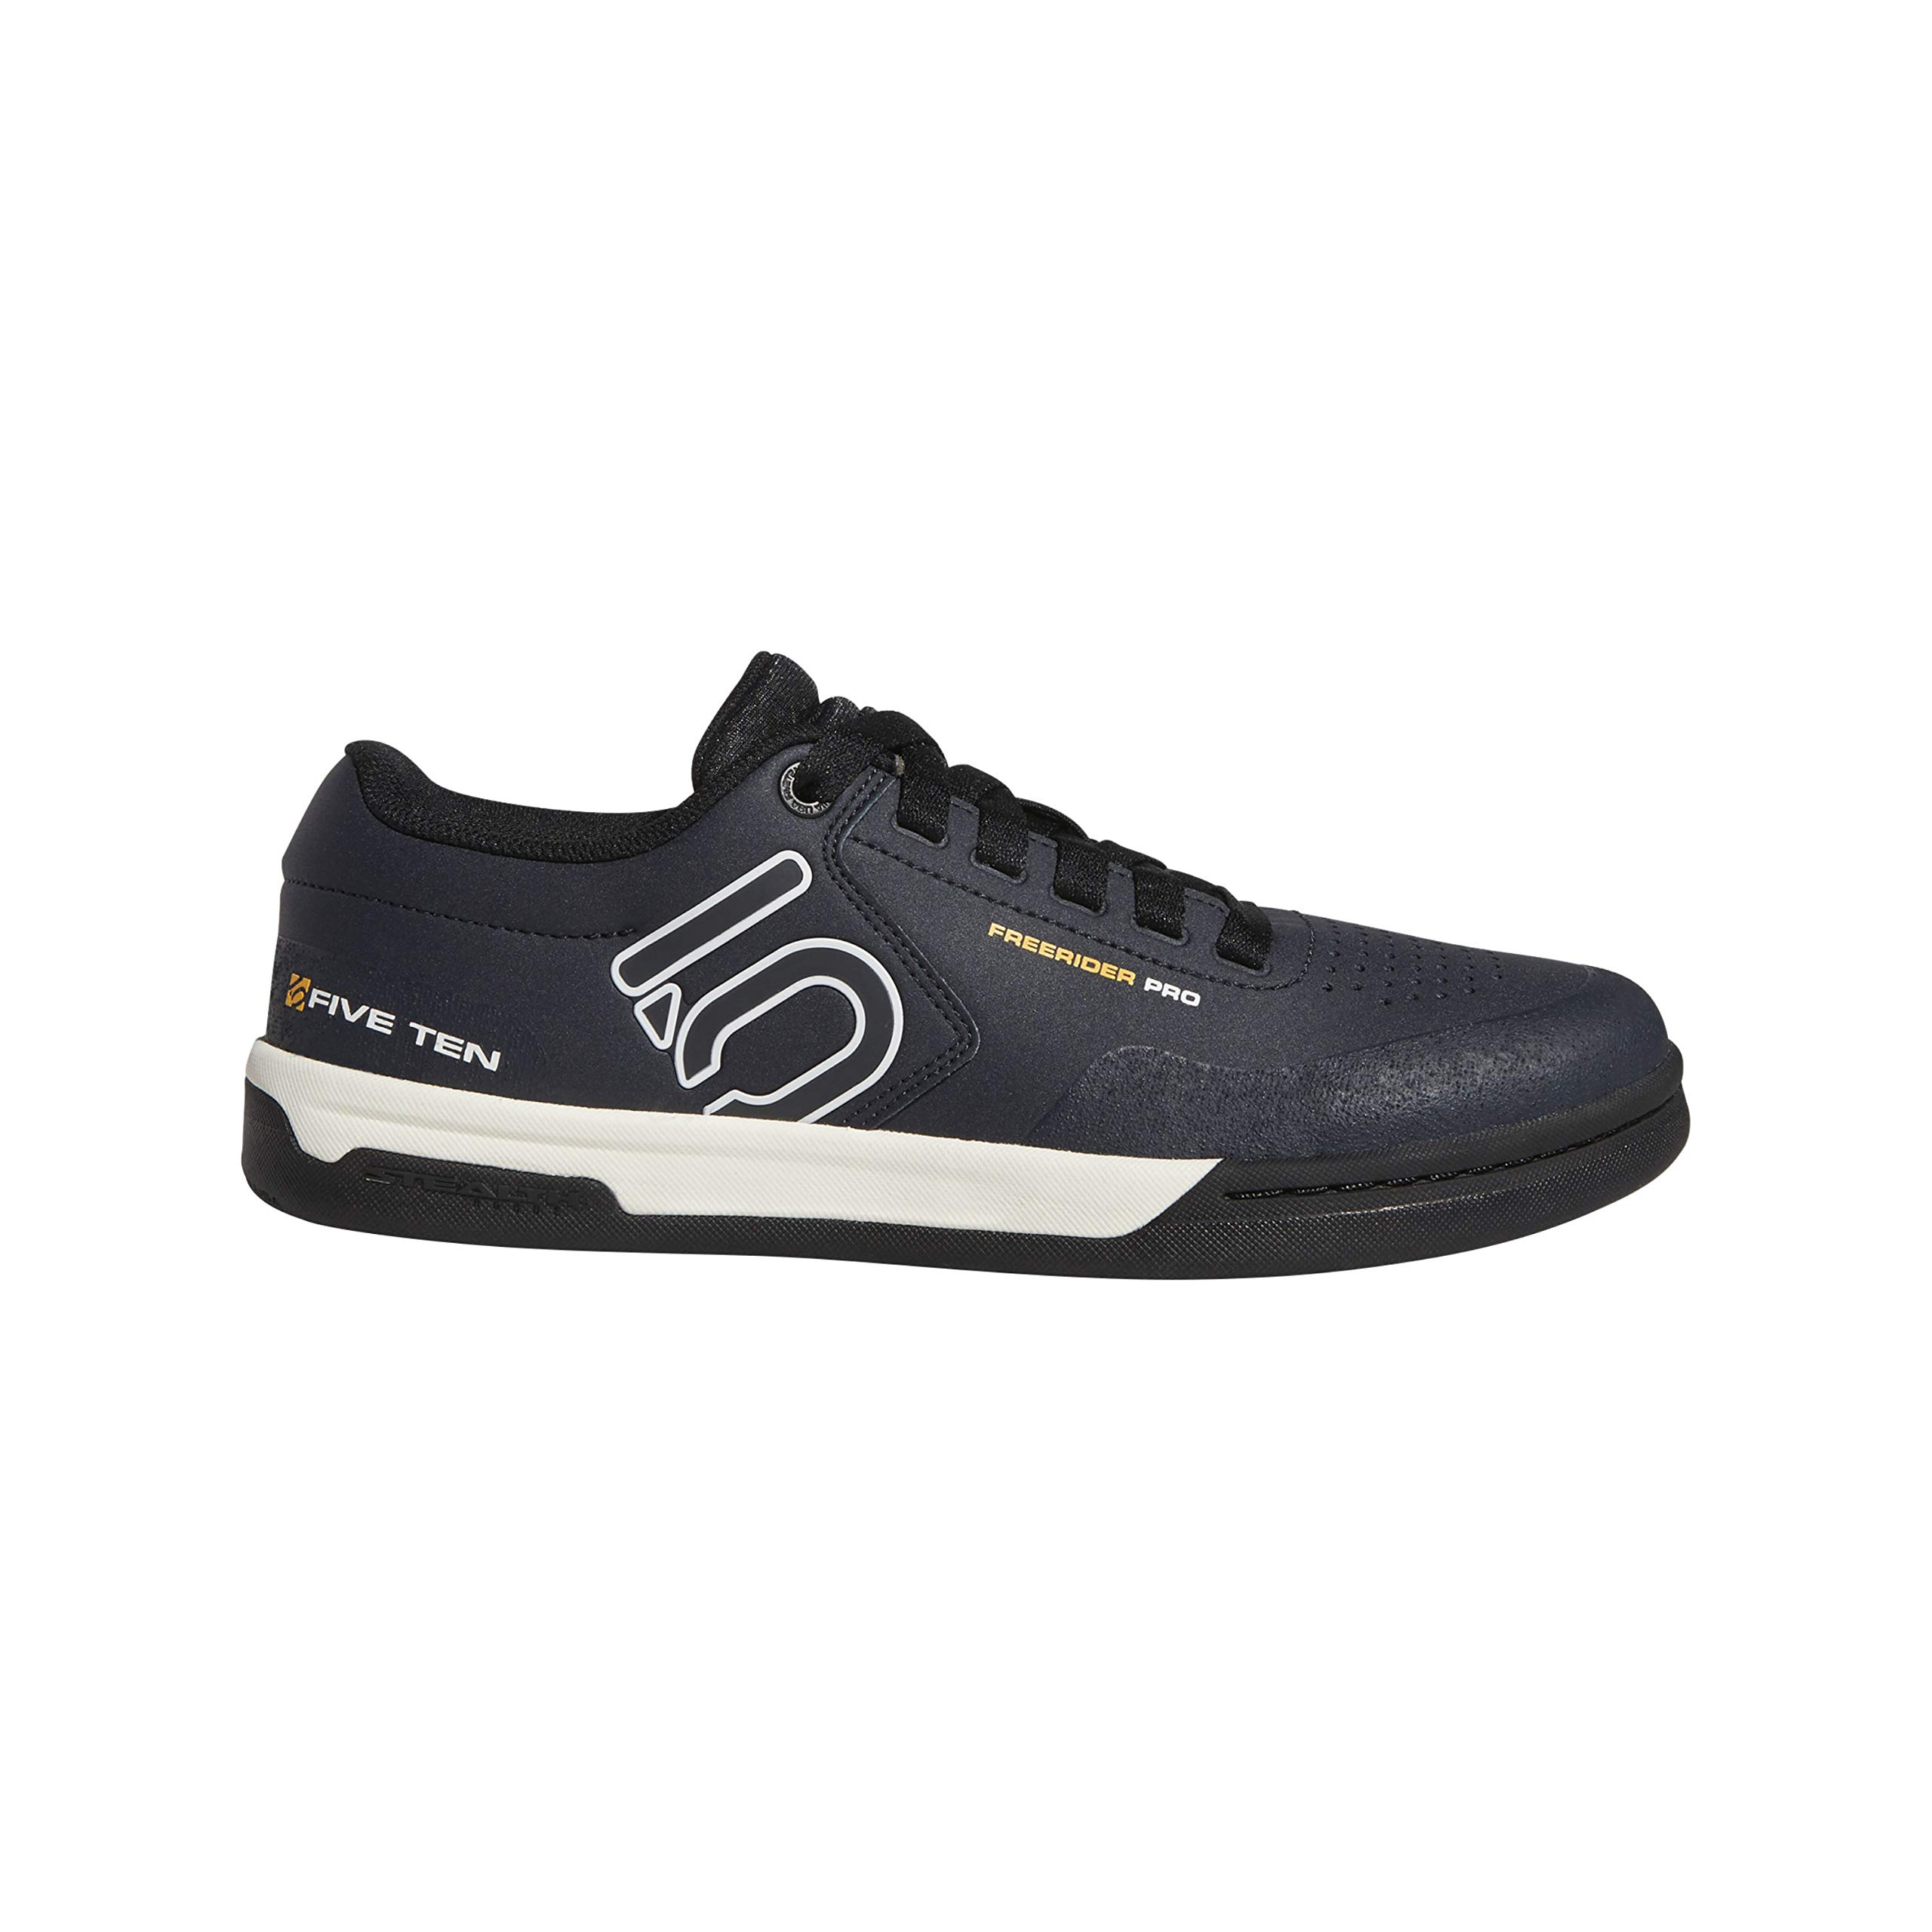 920e1f8585caba Best Rated in Men s Cycling Shoes   Helpful Customer Reviews ...